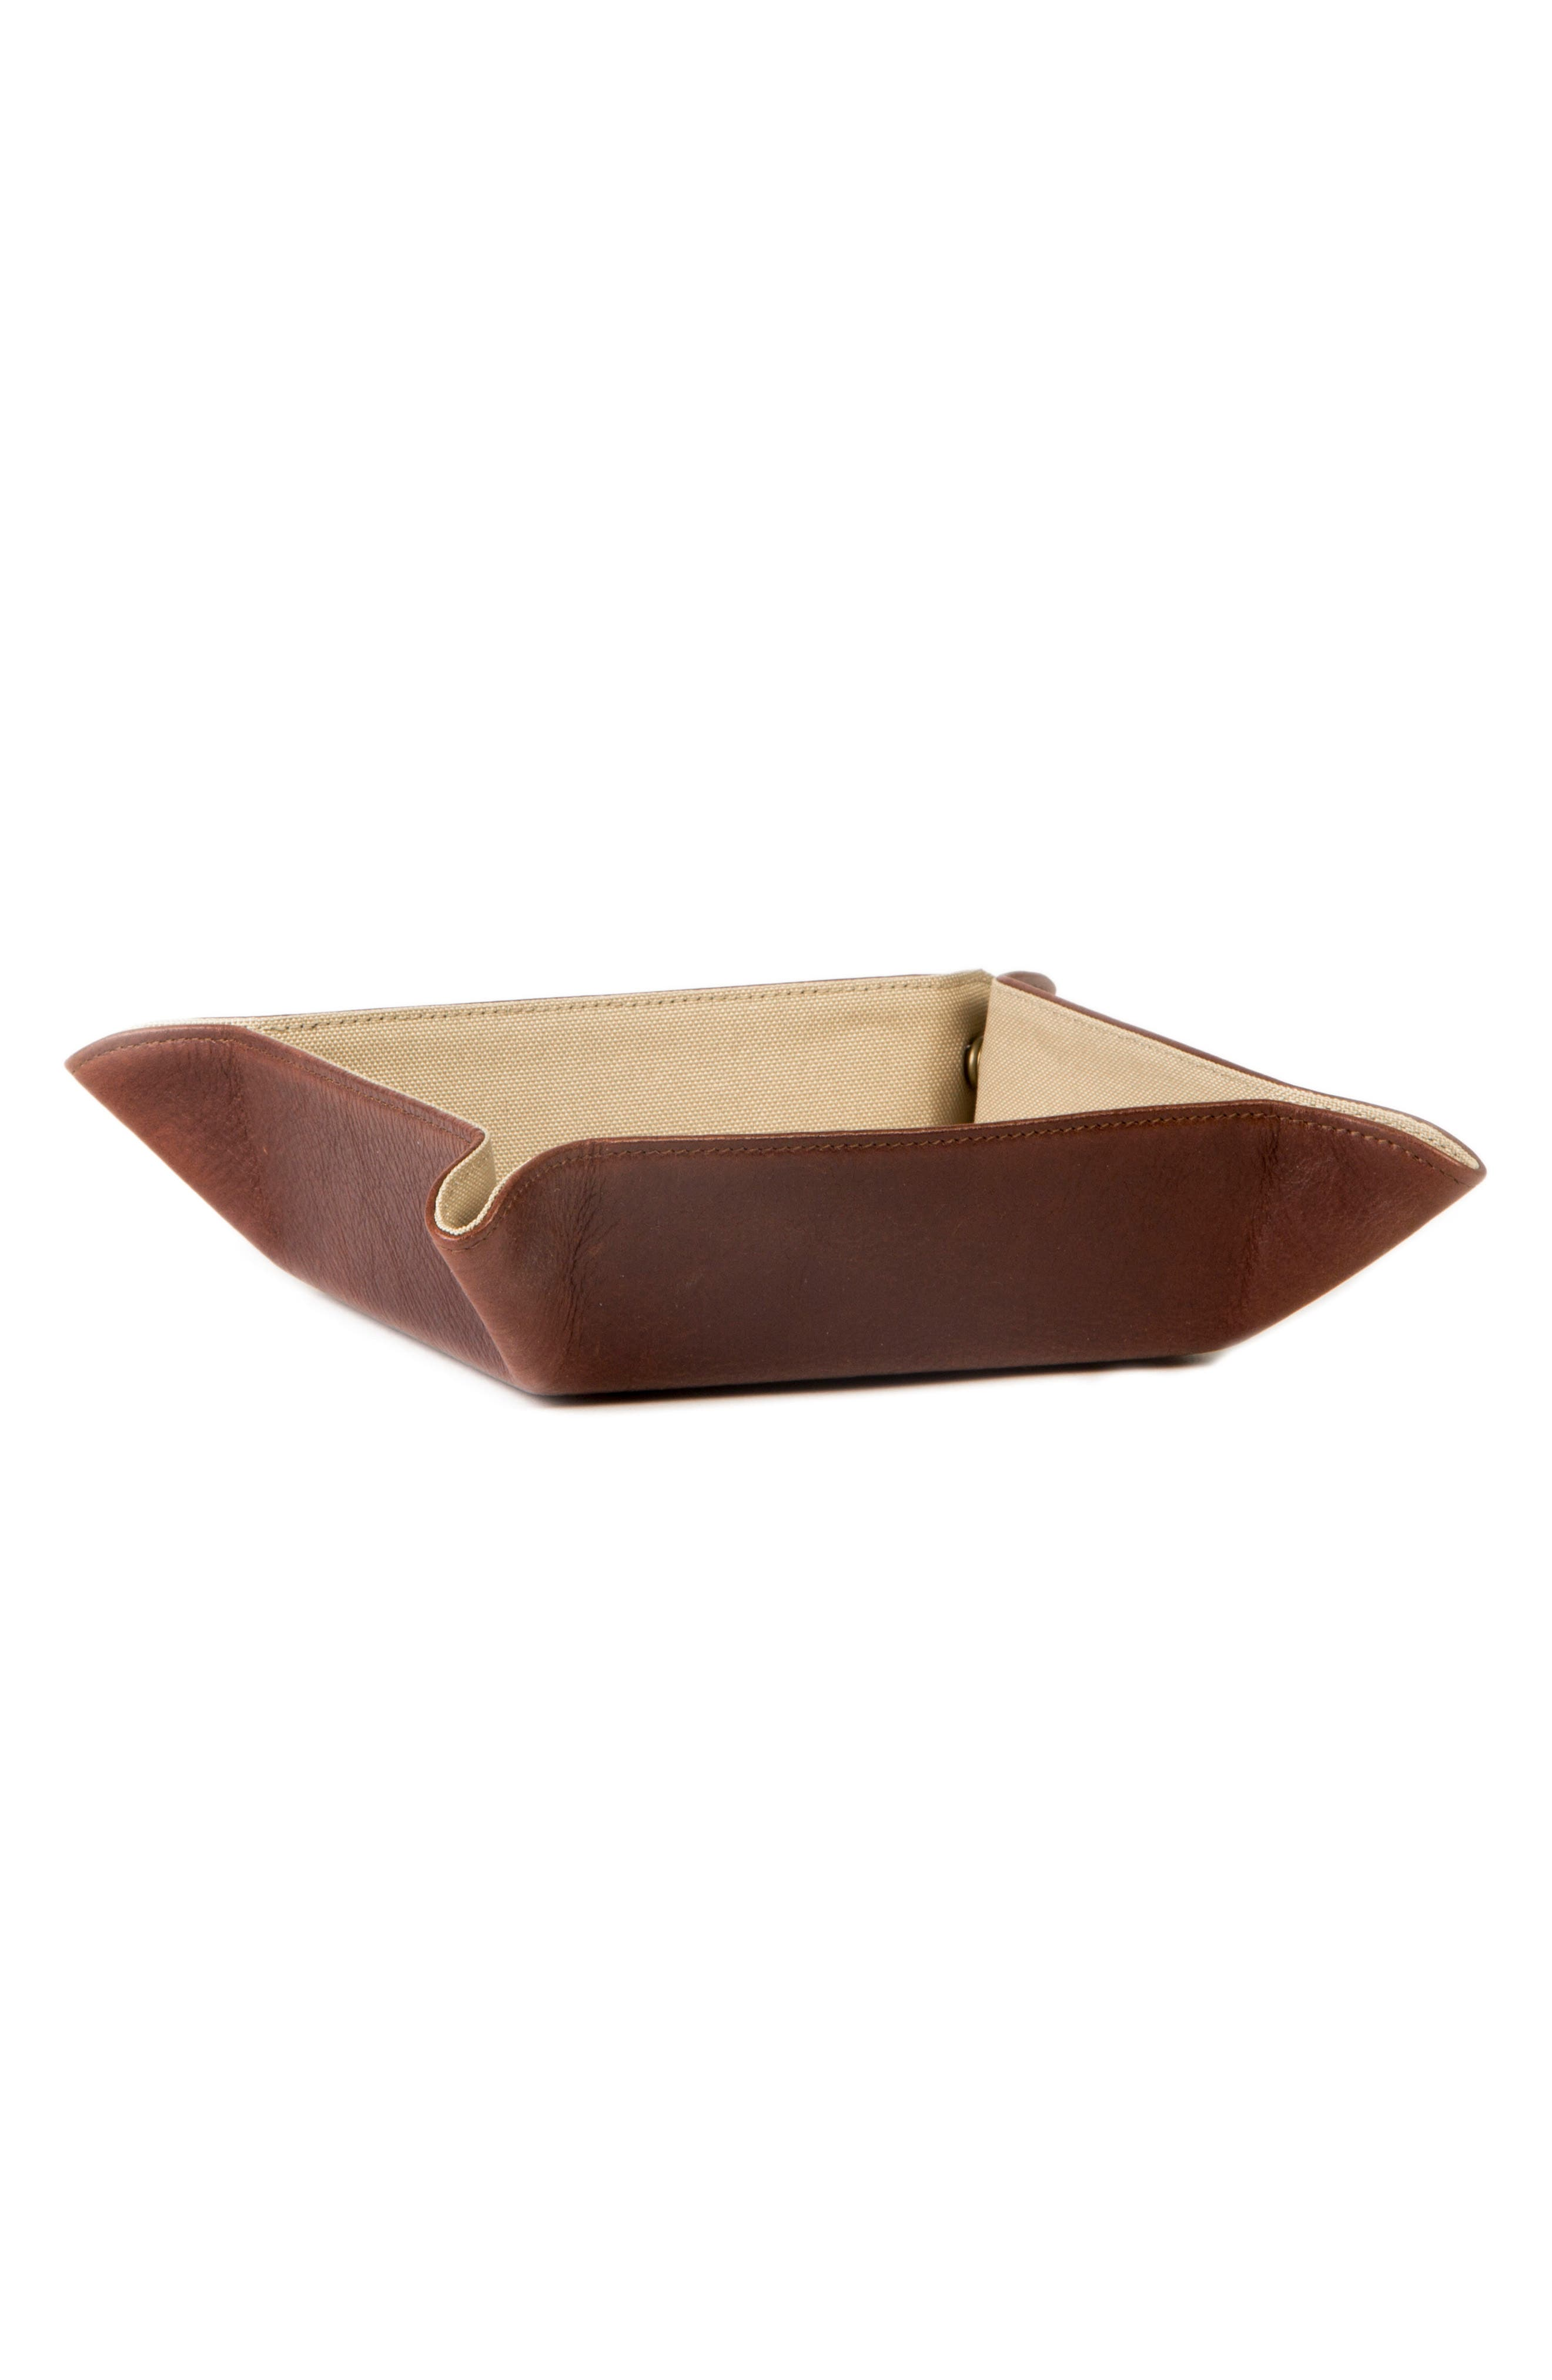 Becker Catchall Tray,                             Alternate thumbnail 12, color,